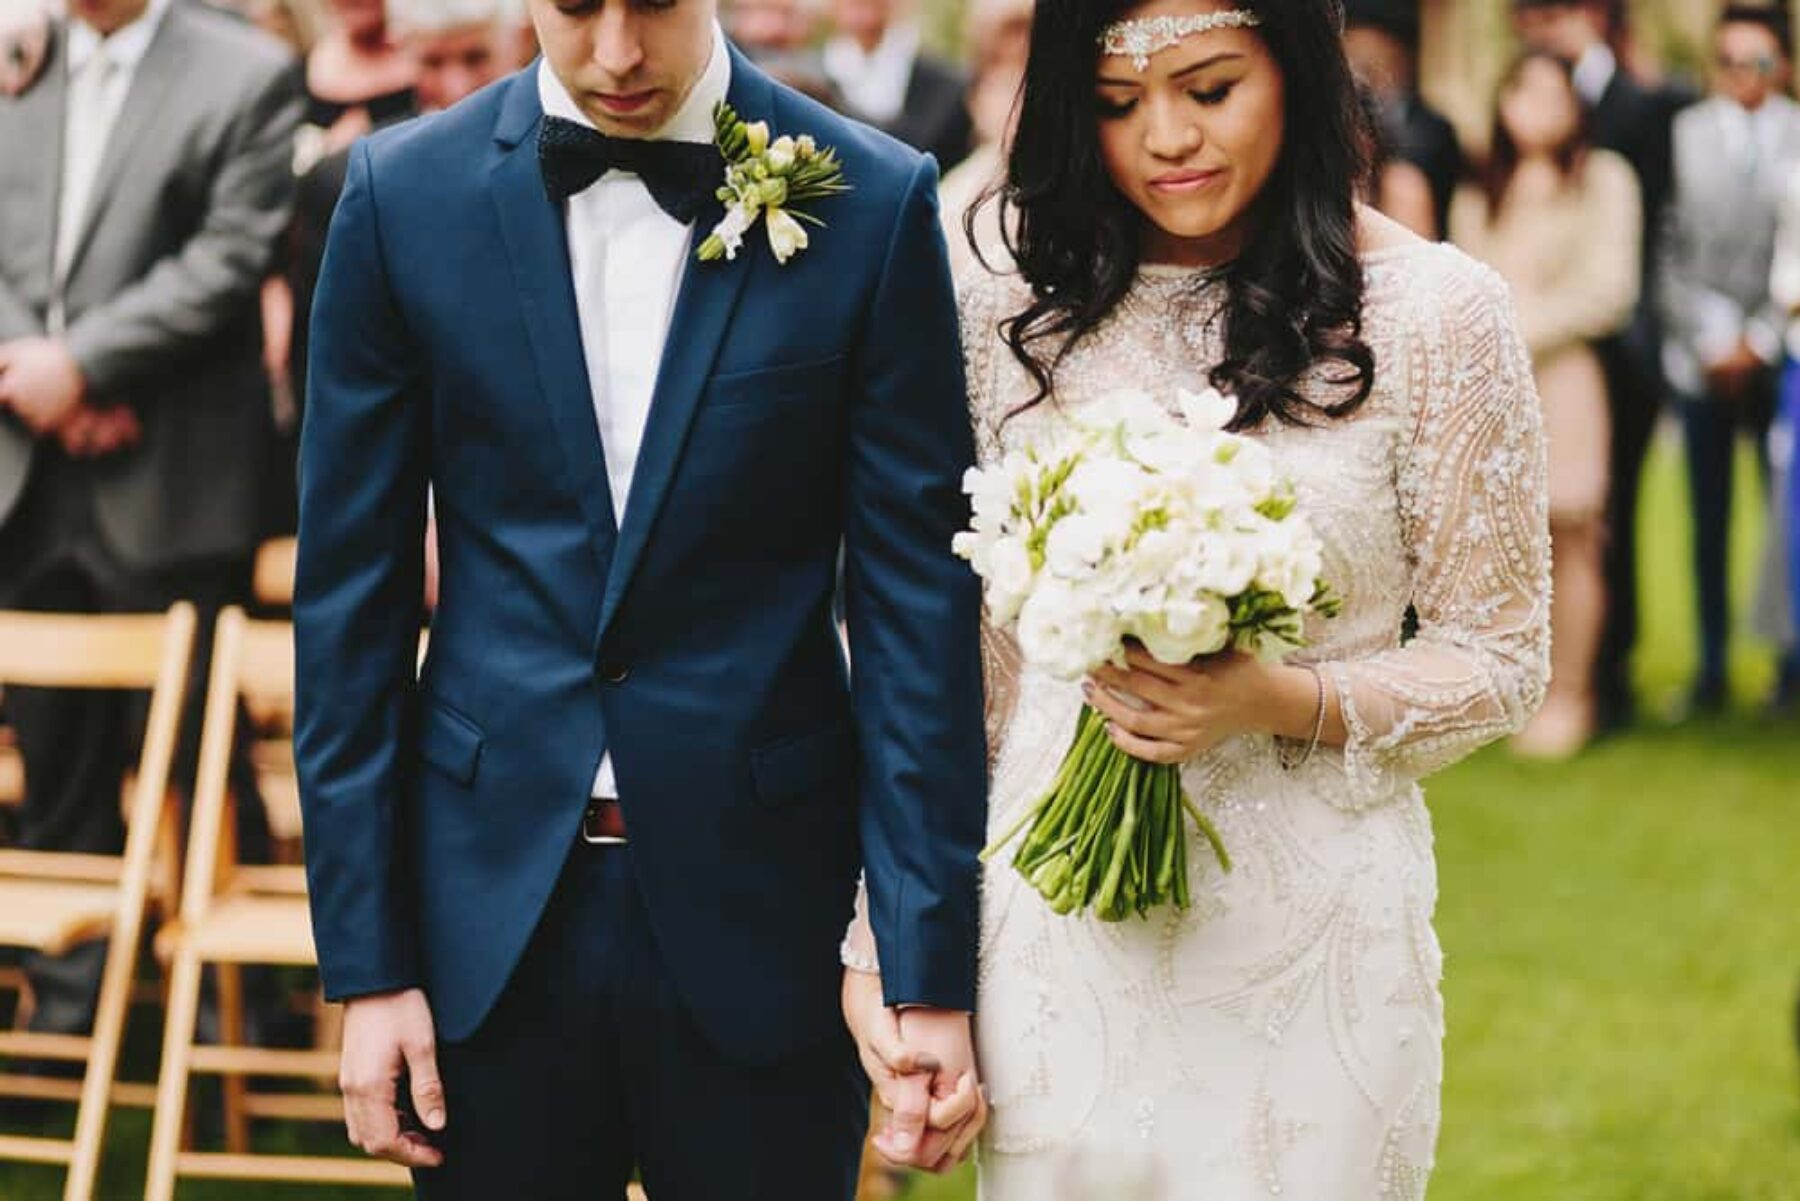 Melbourne Royal Botanic Gardens wedding / Photography by Jonathan Ong